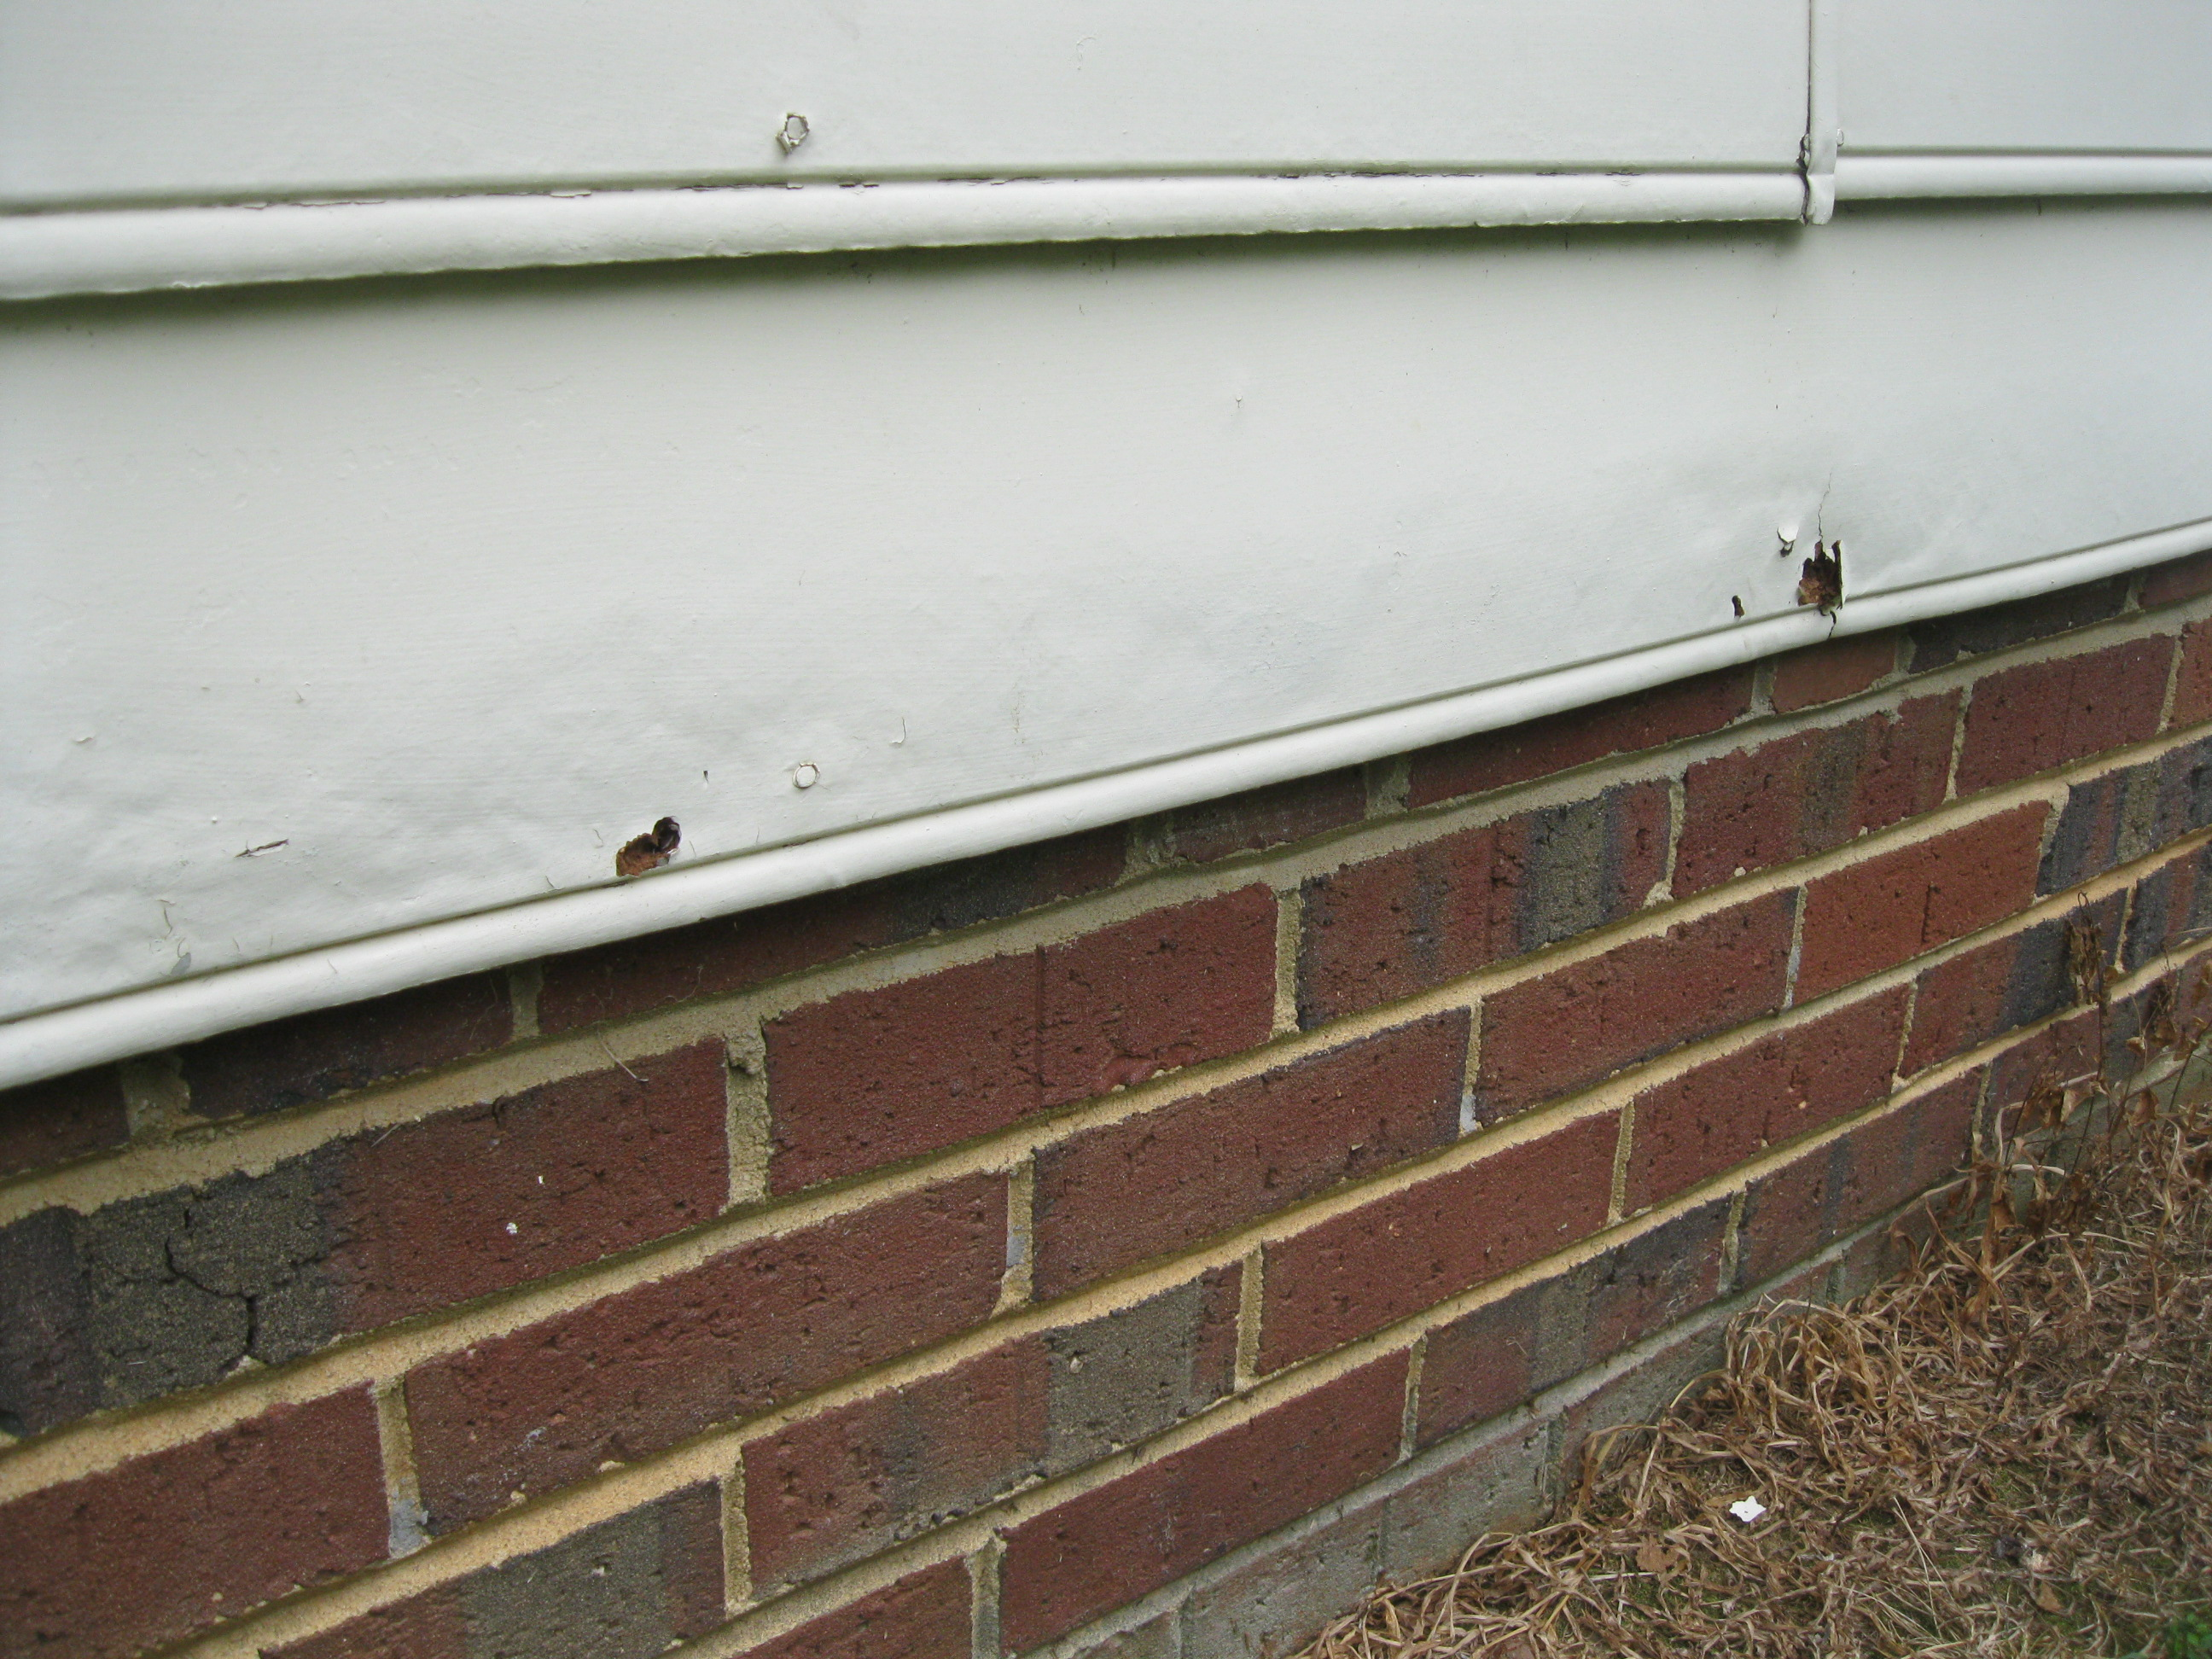 Masonite siding claims